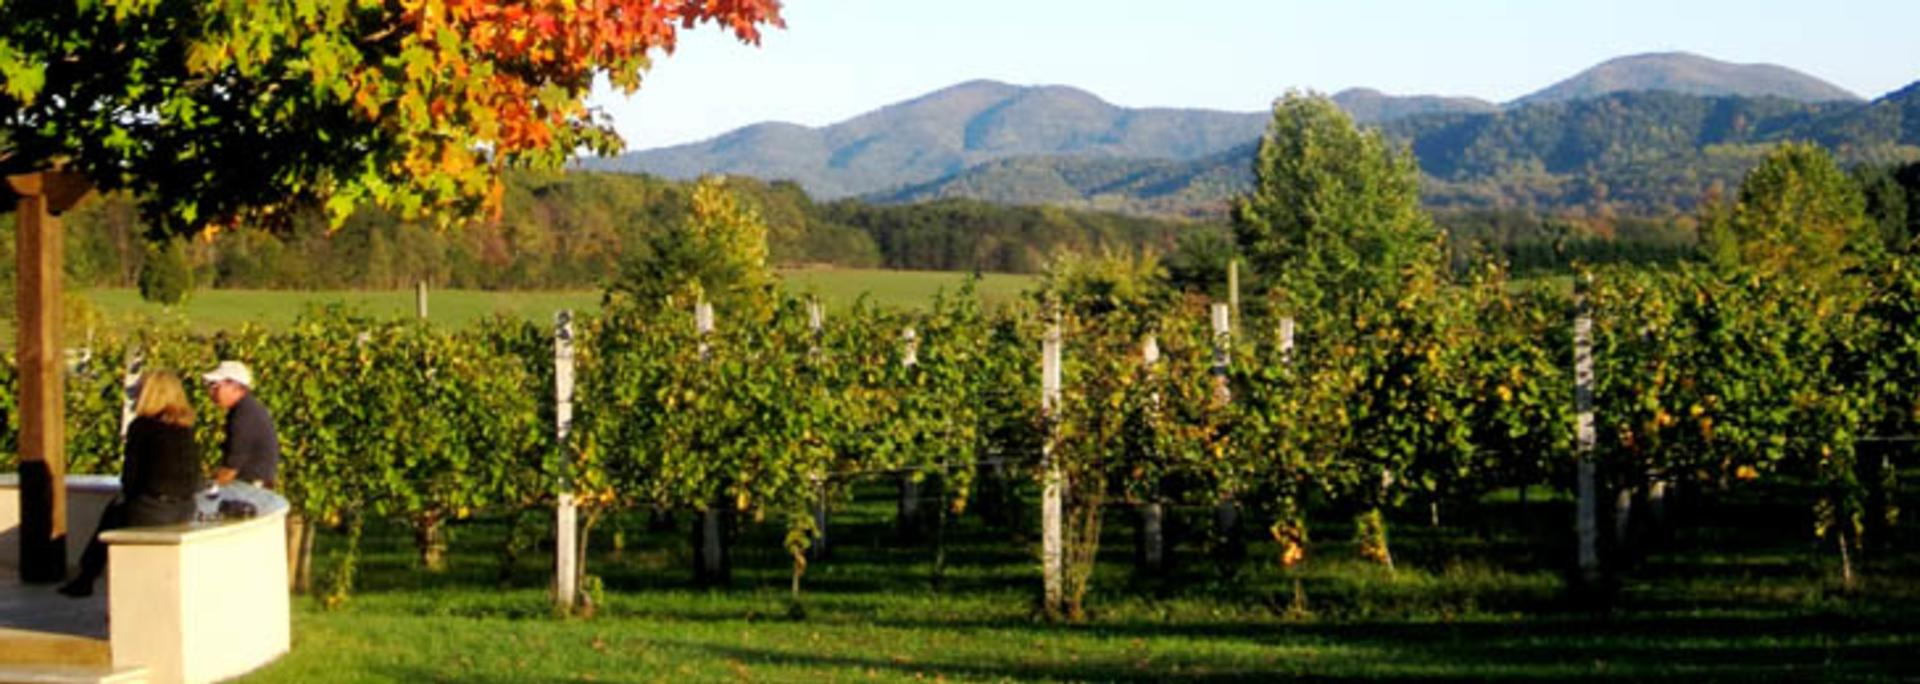 AA- Afton Mountain Vineyard